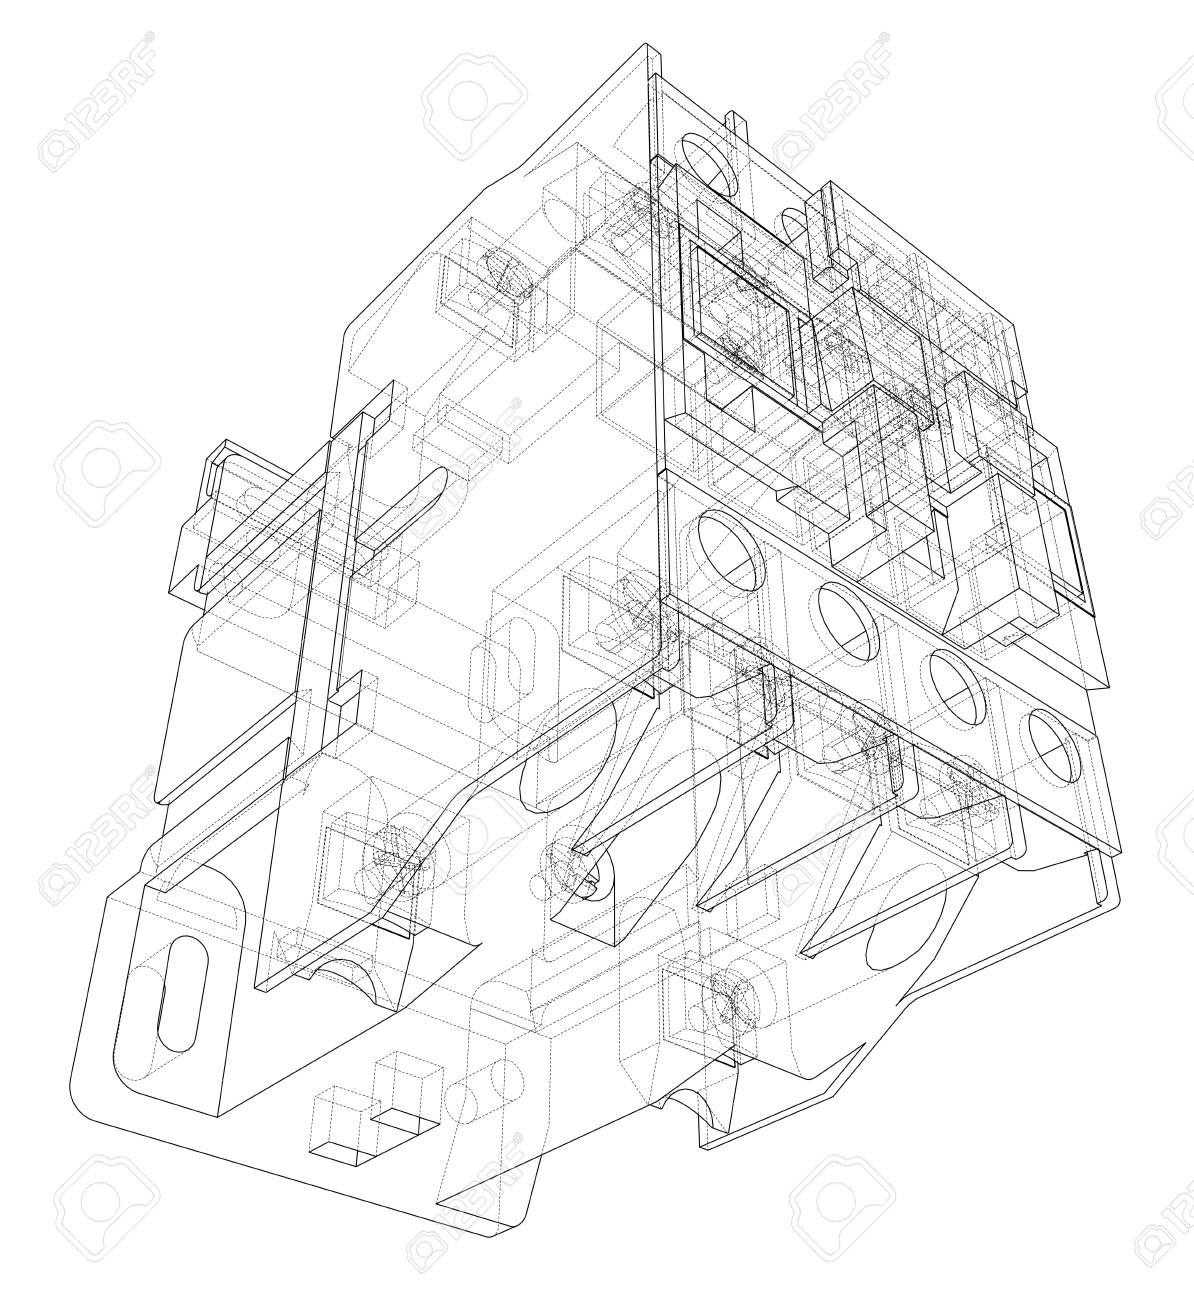 breaker schematic wiring diagram database Utility Breaker Box Wiring circuit breaker drawing box wiring diagram home breaker automatic circuit breaker concept vector rendering of 3d